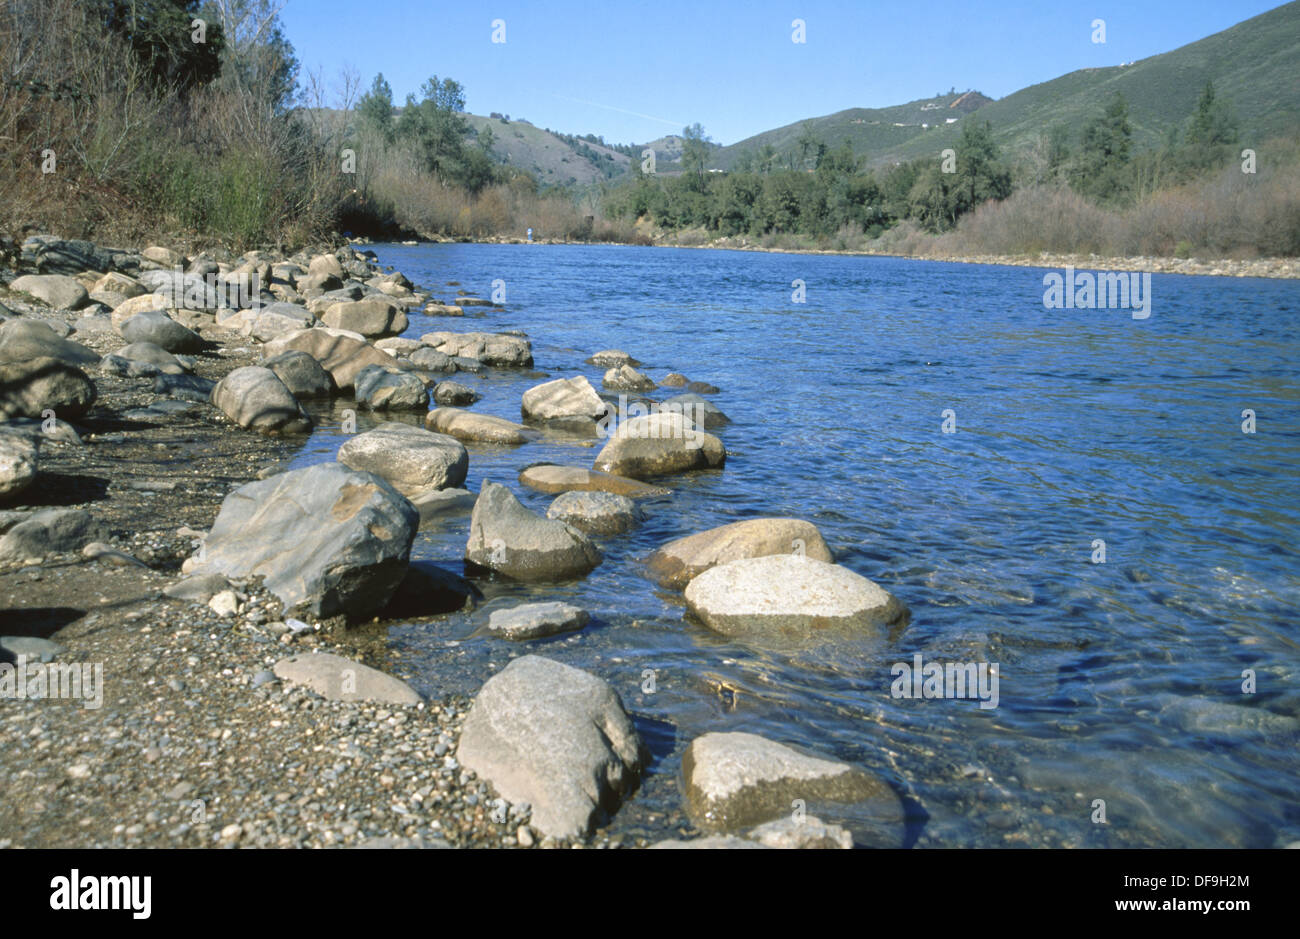 Marshall Gold Discovery State Historic Park: South Fork of American River (in 1848 James Marshall found gold here). California. - Stock Image